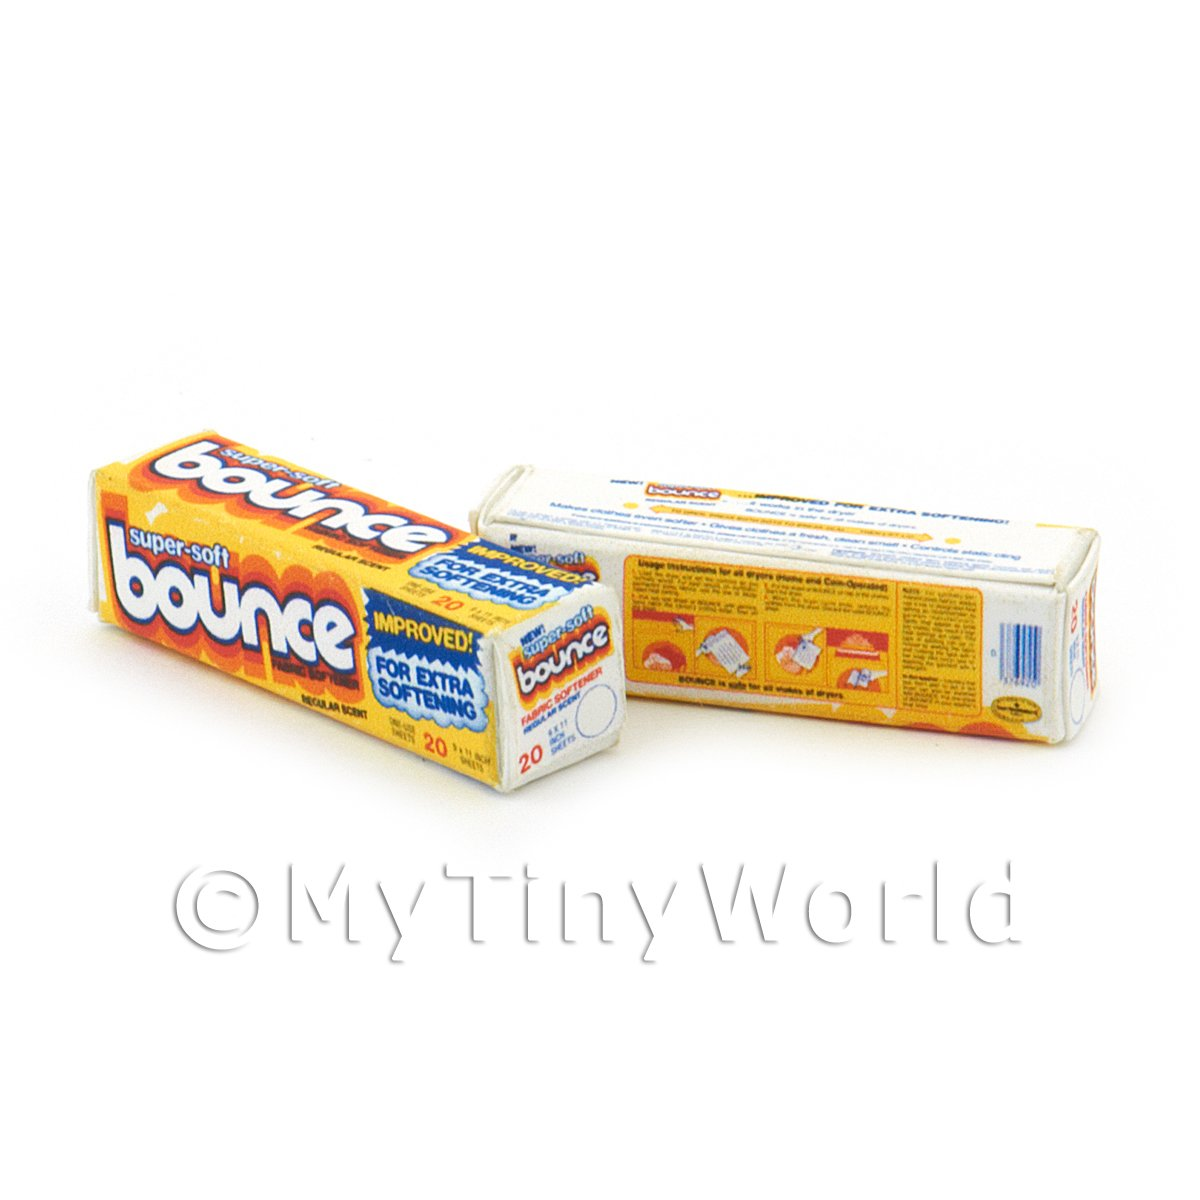 Dolls House Miniature Bounce Box From 1970s